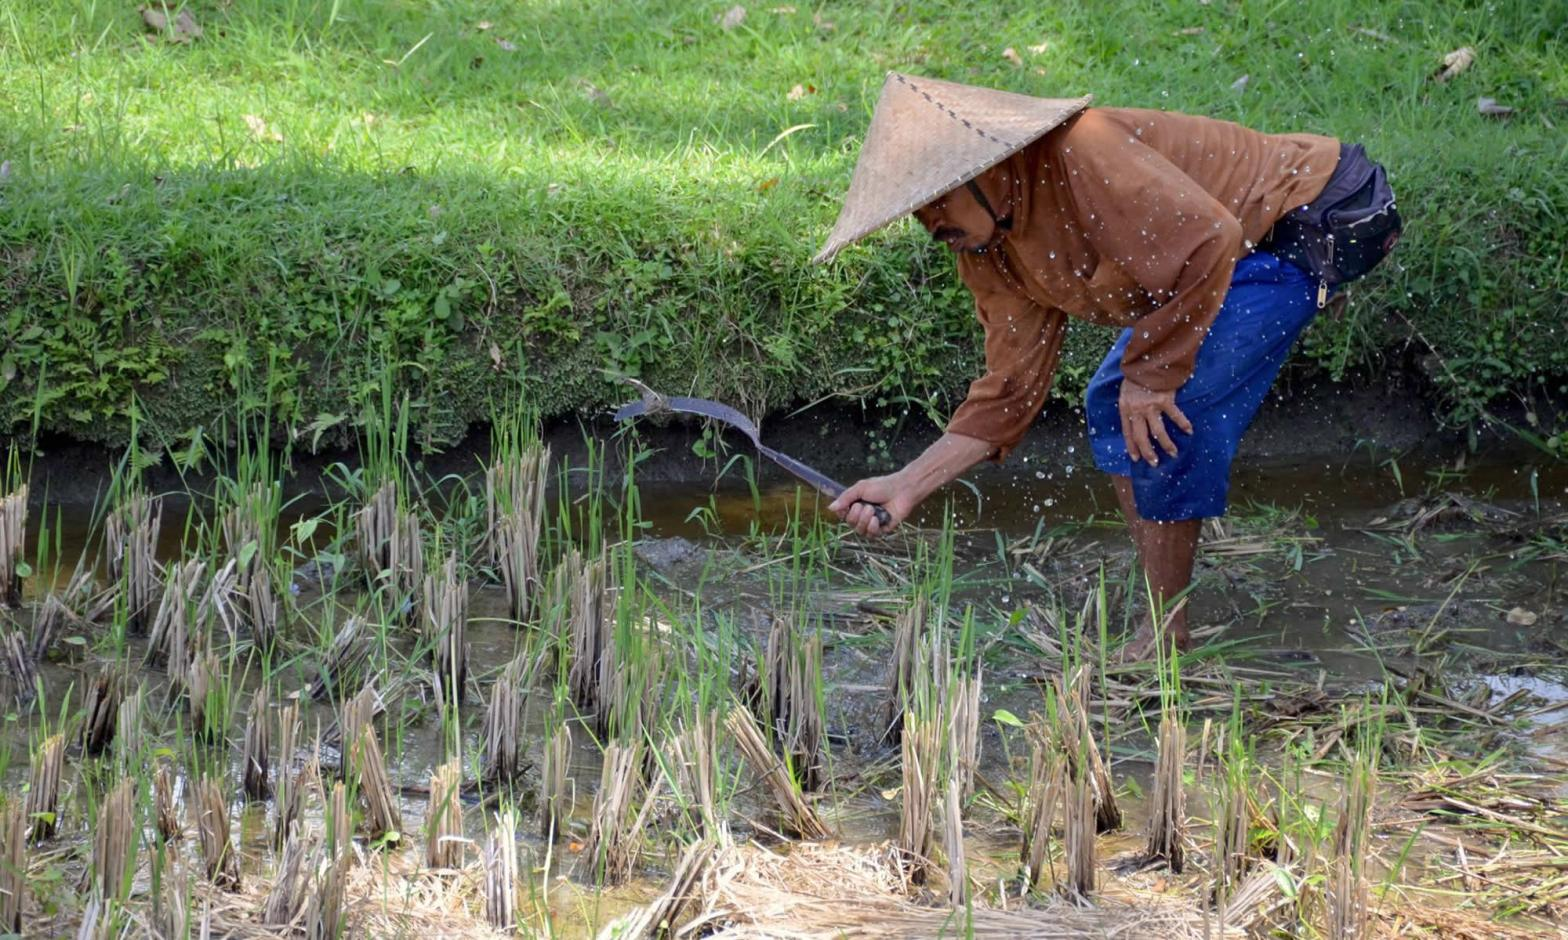 A rice farmer in Ubud, Bali cuts rice with a sickle.